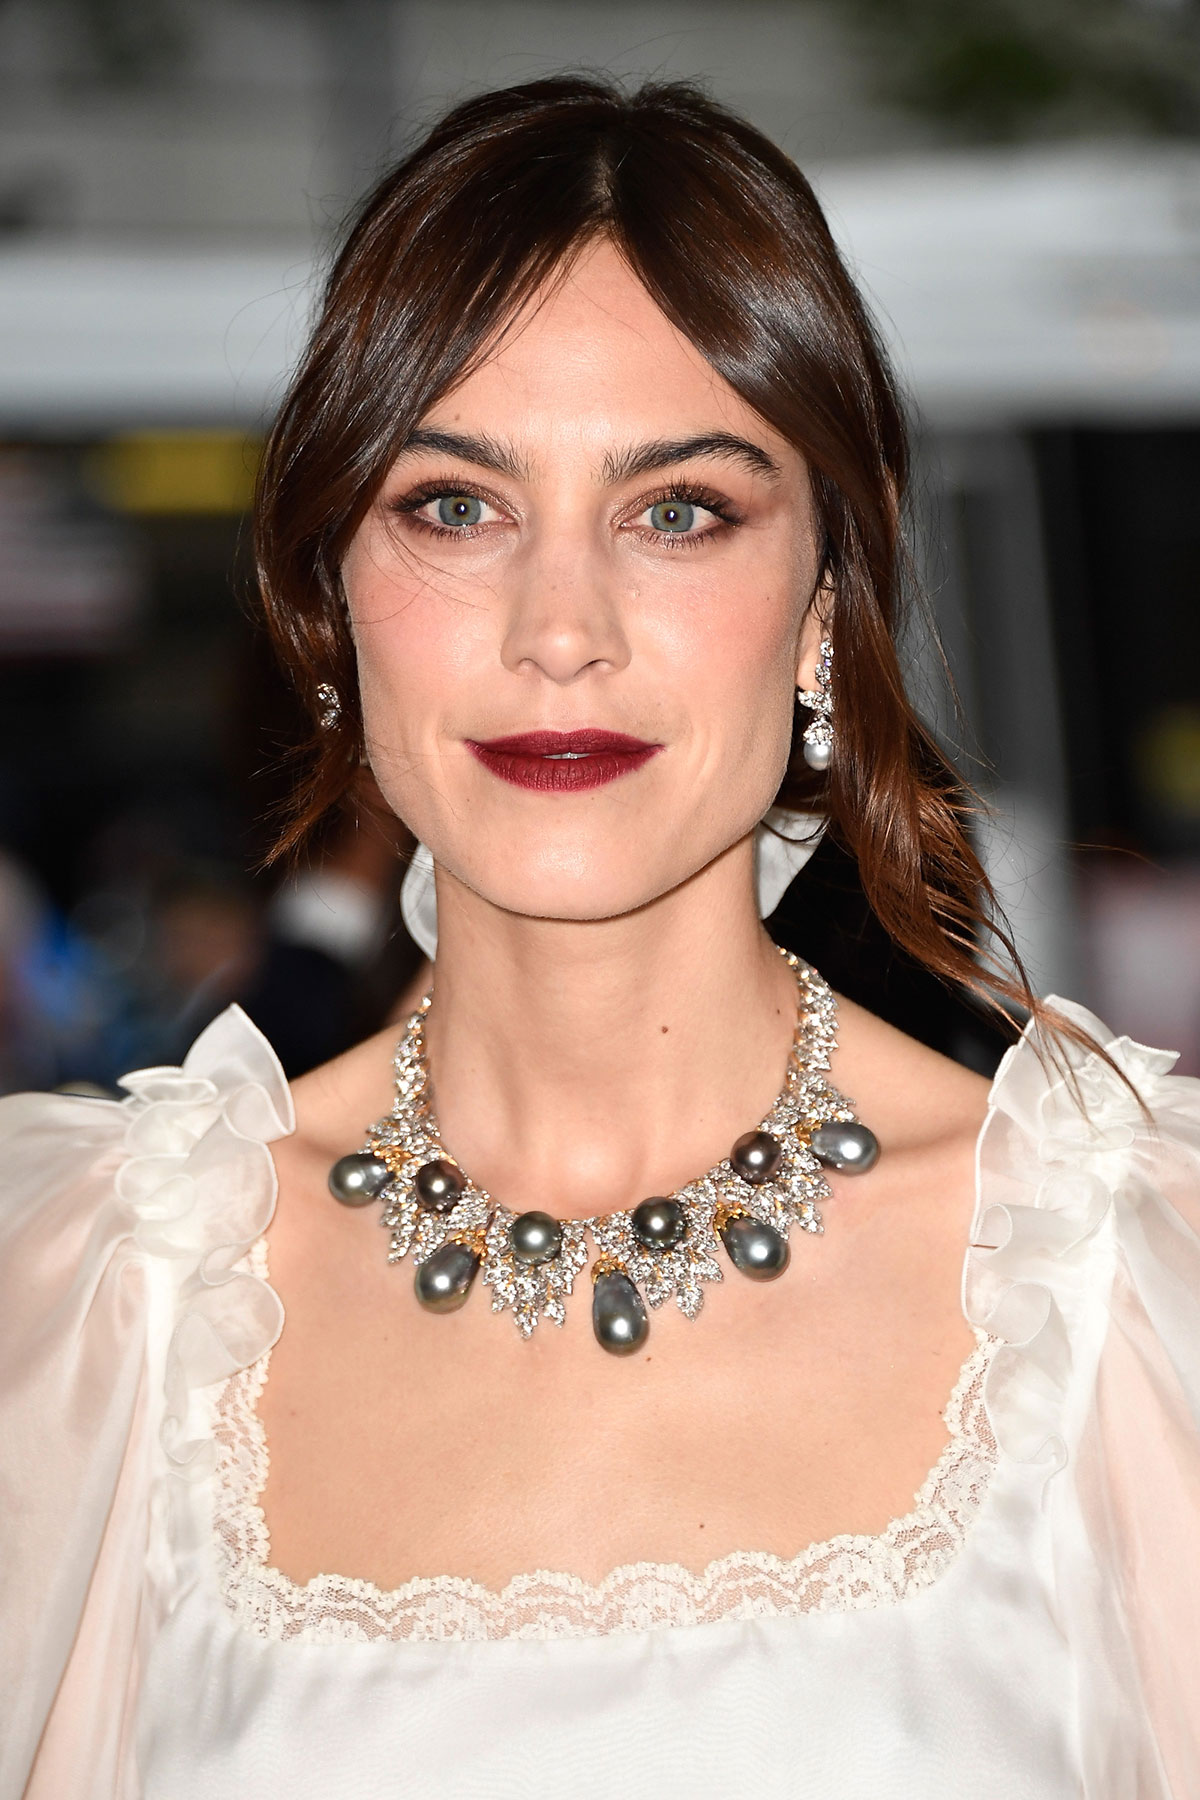 Alexa Chung's Low-Maintenance Updo